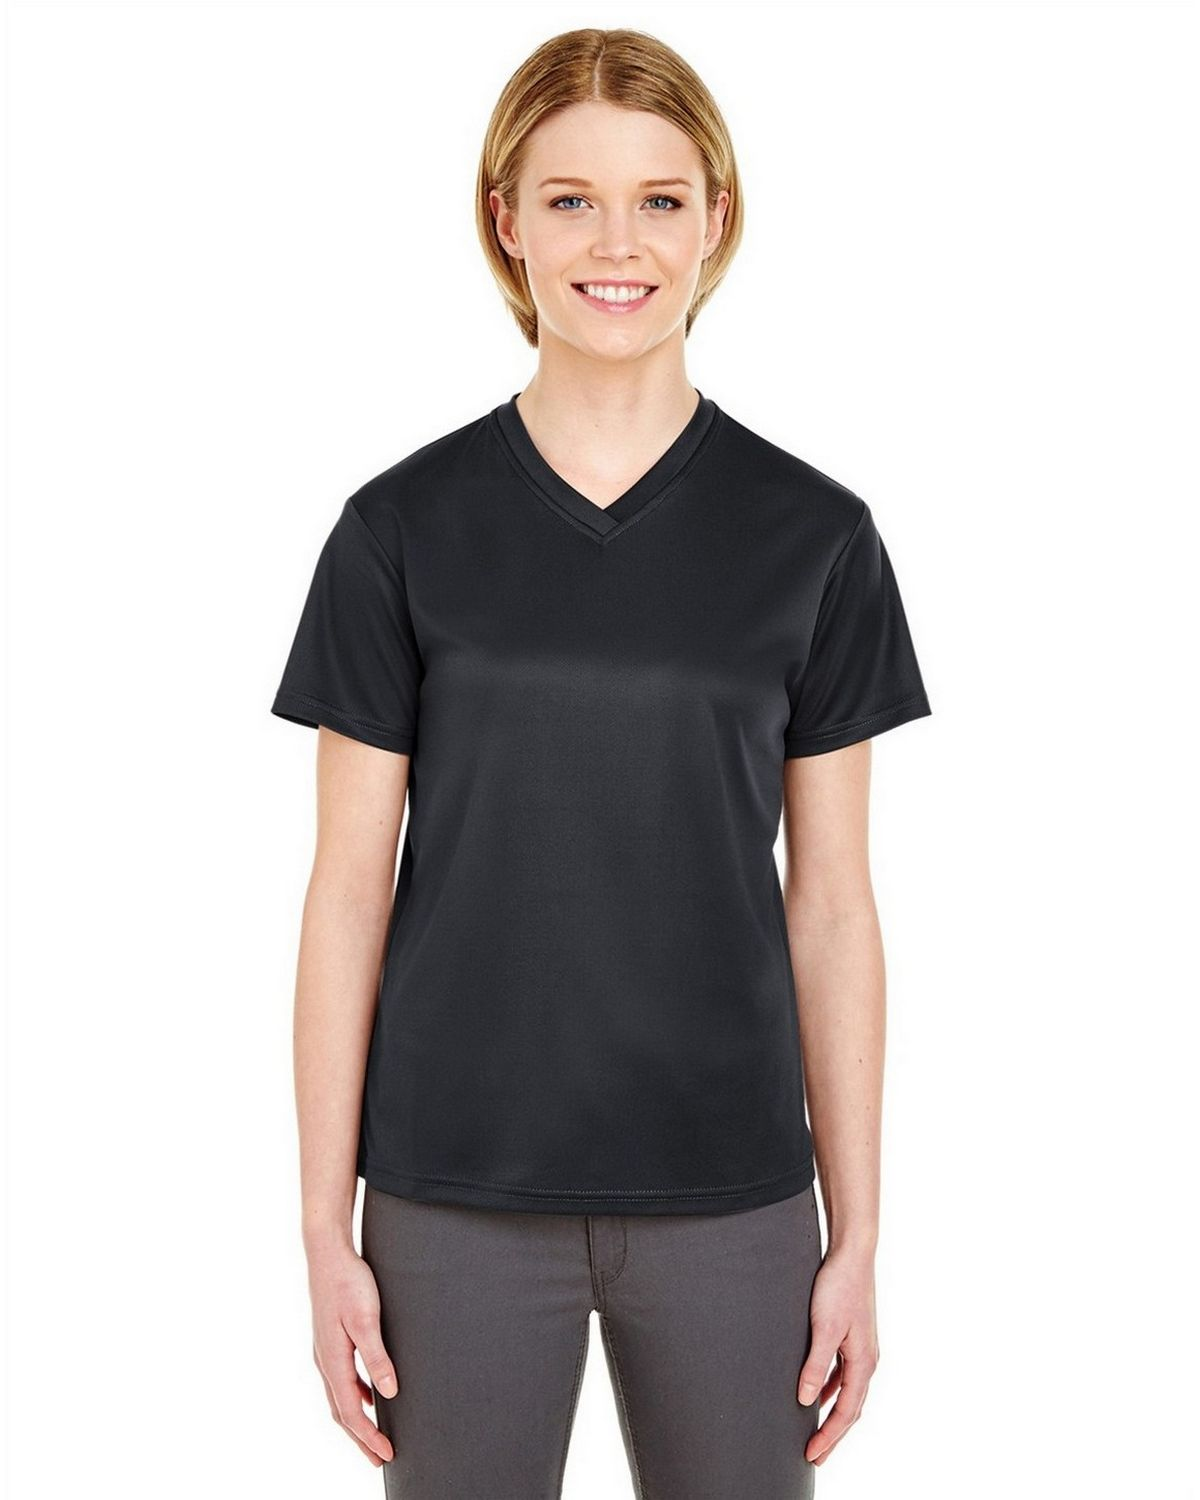 Ultraclub 8400L V-Neck Tee - Black - S 8400L